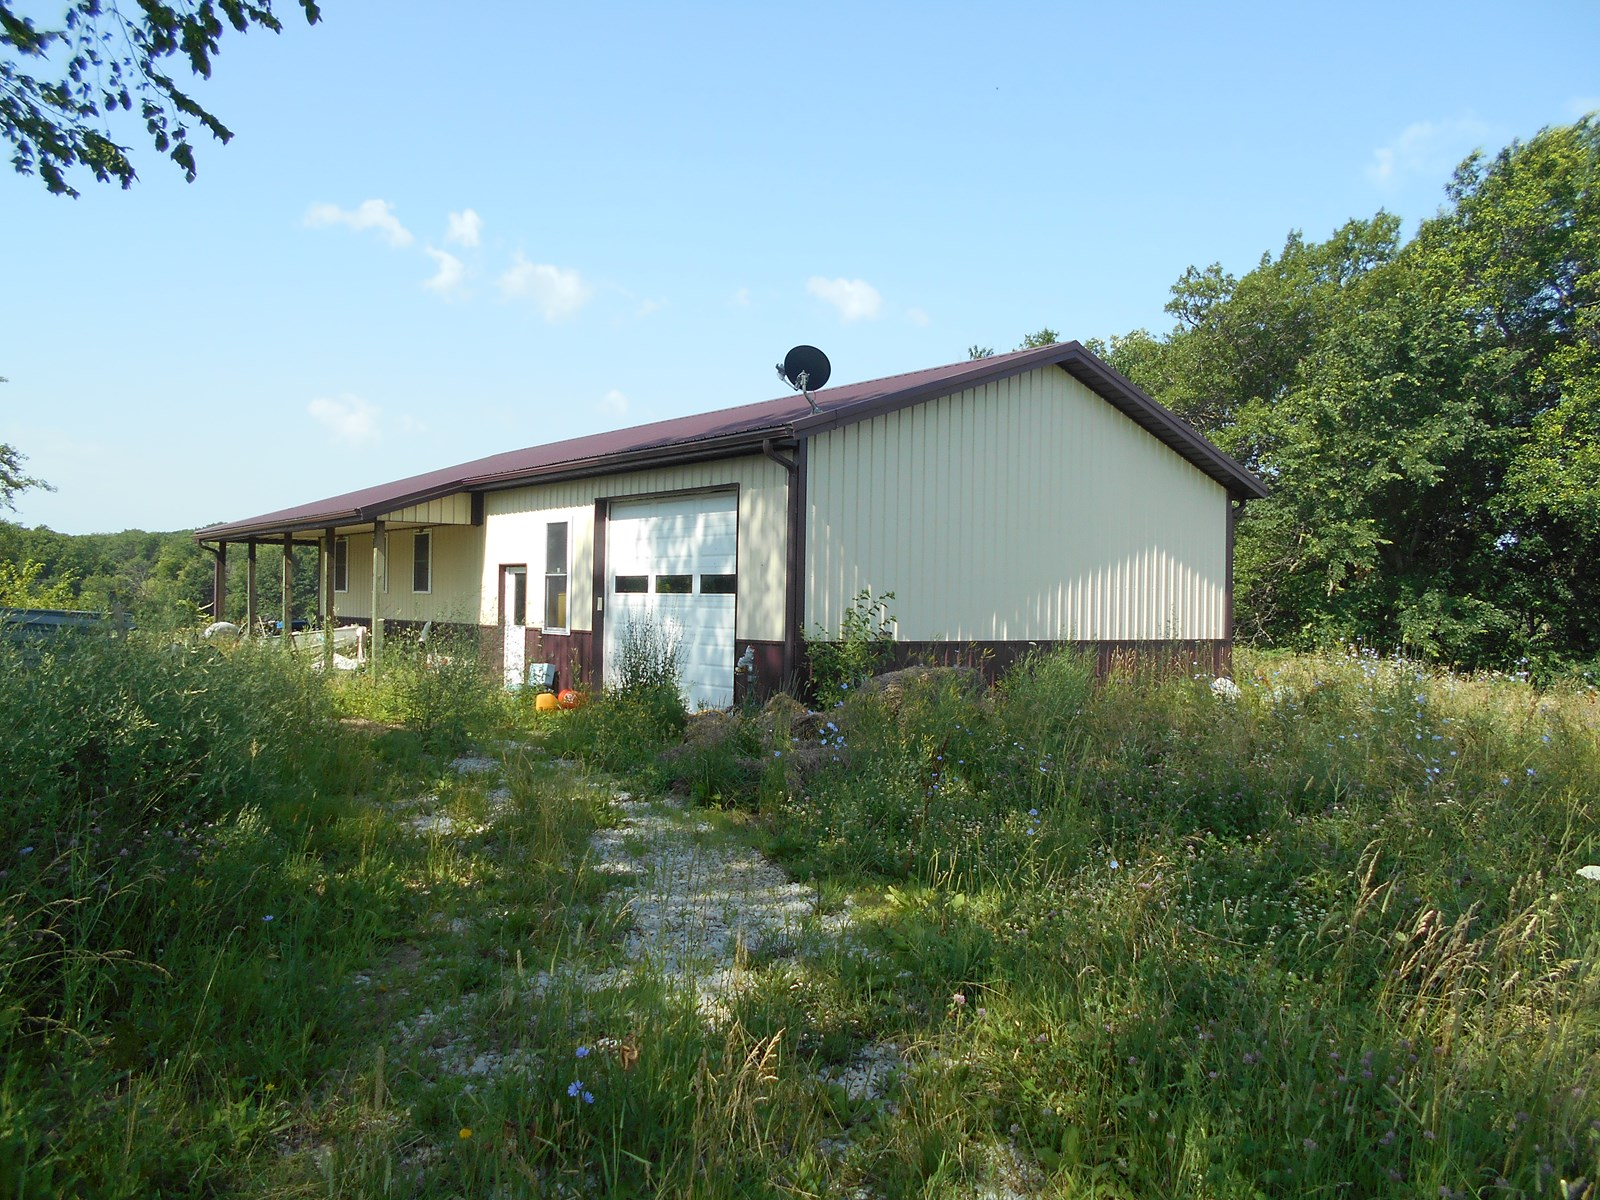 FOR SALE DAVIESS COUNTY MO 165 AC HUNTING, REC, INVESTMENT